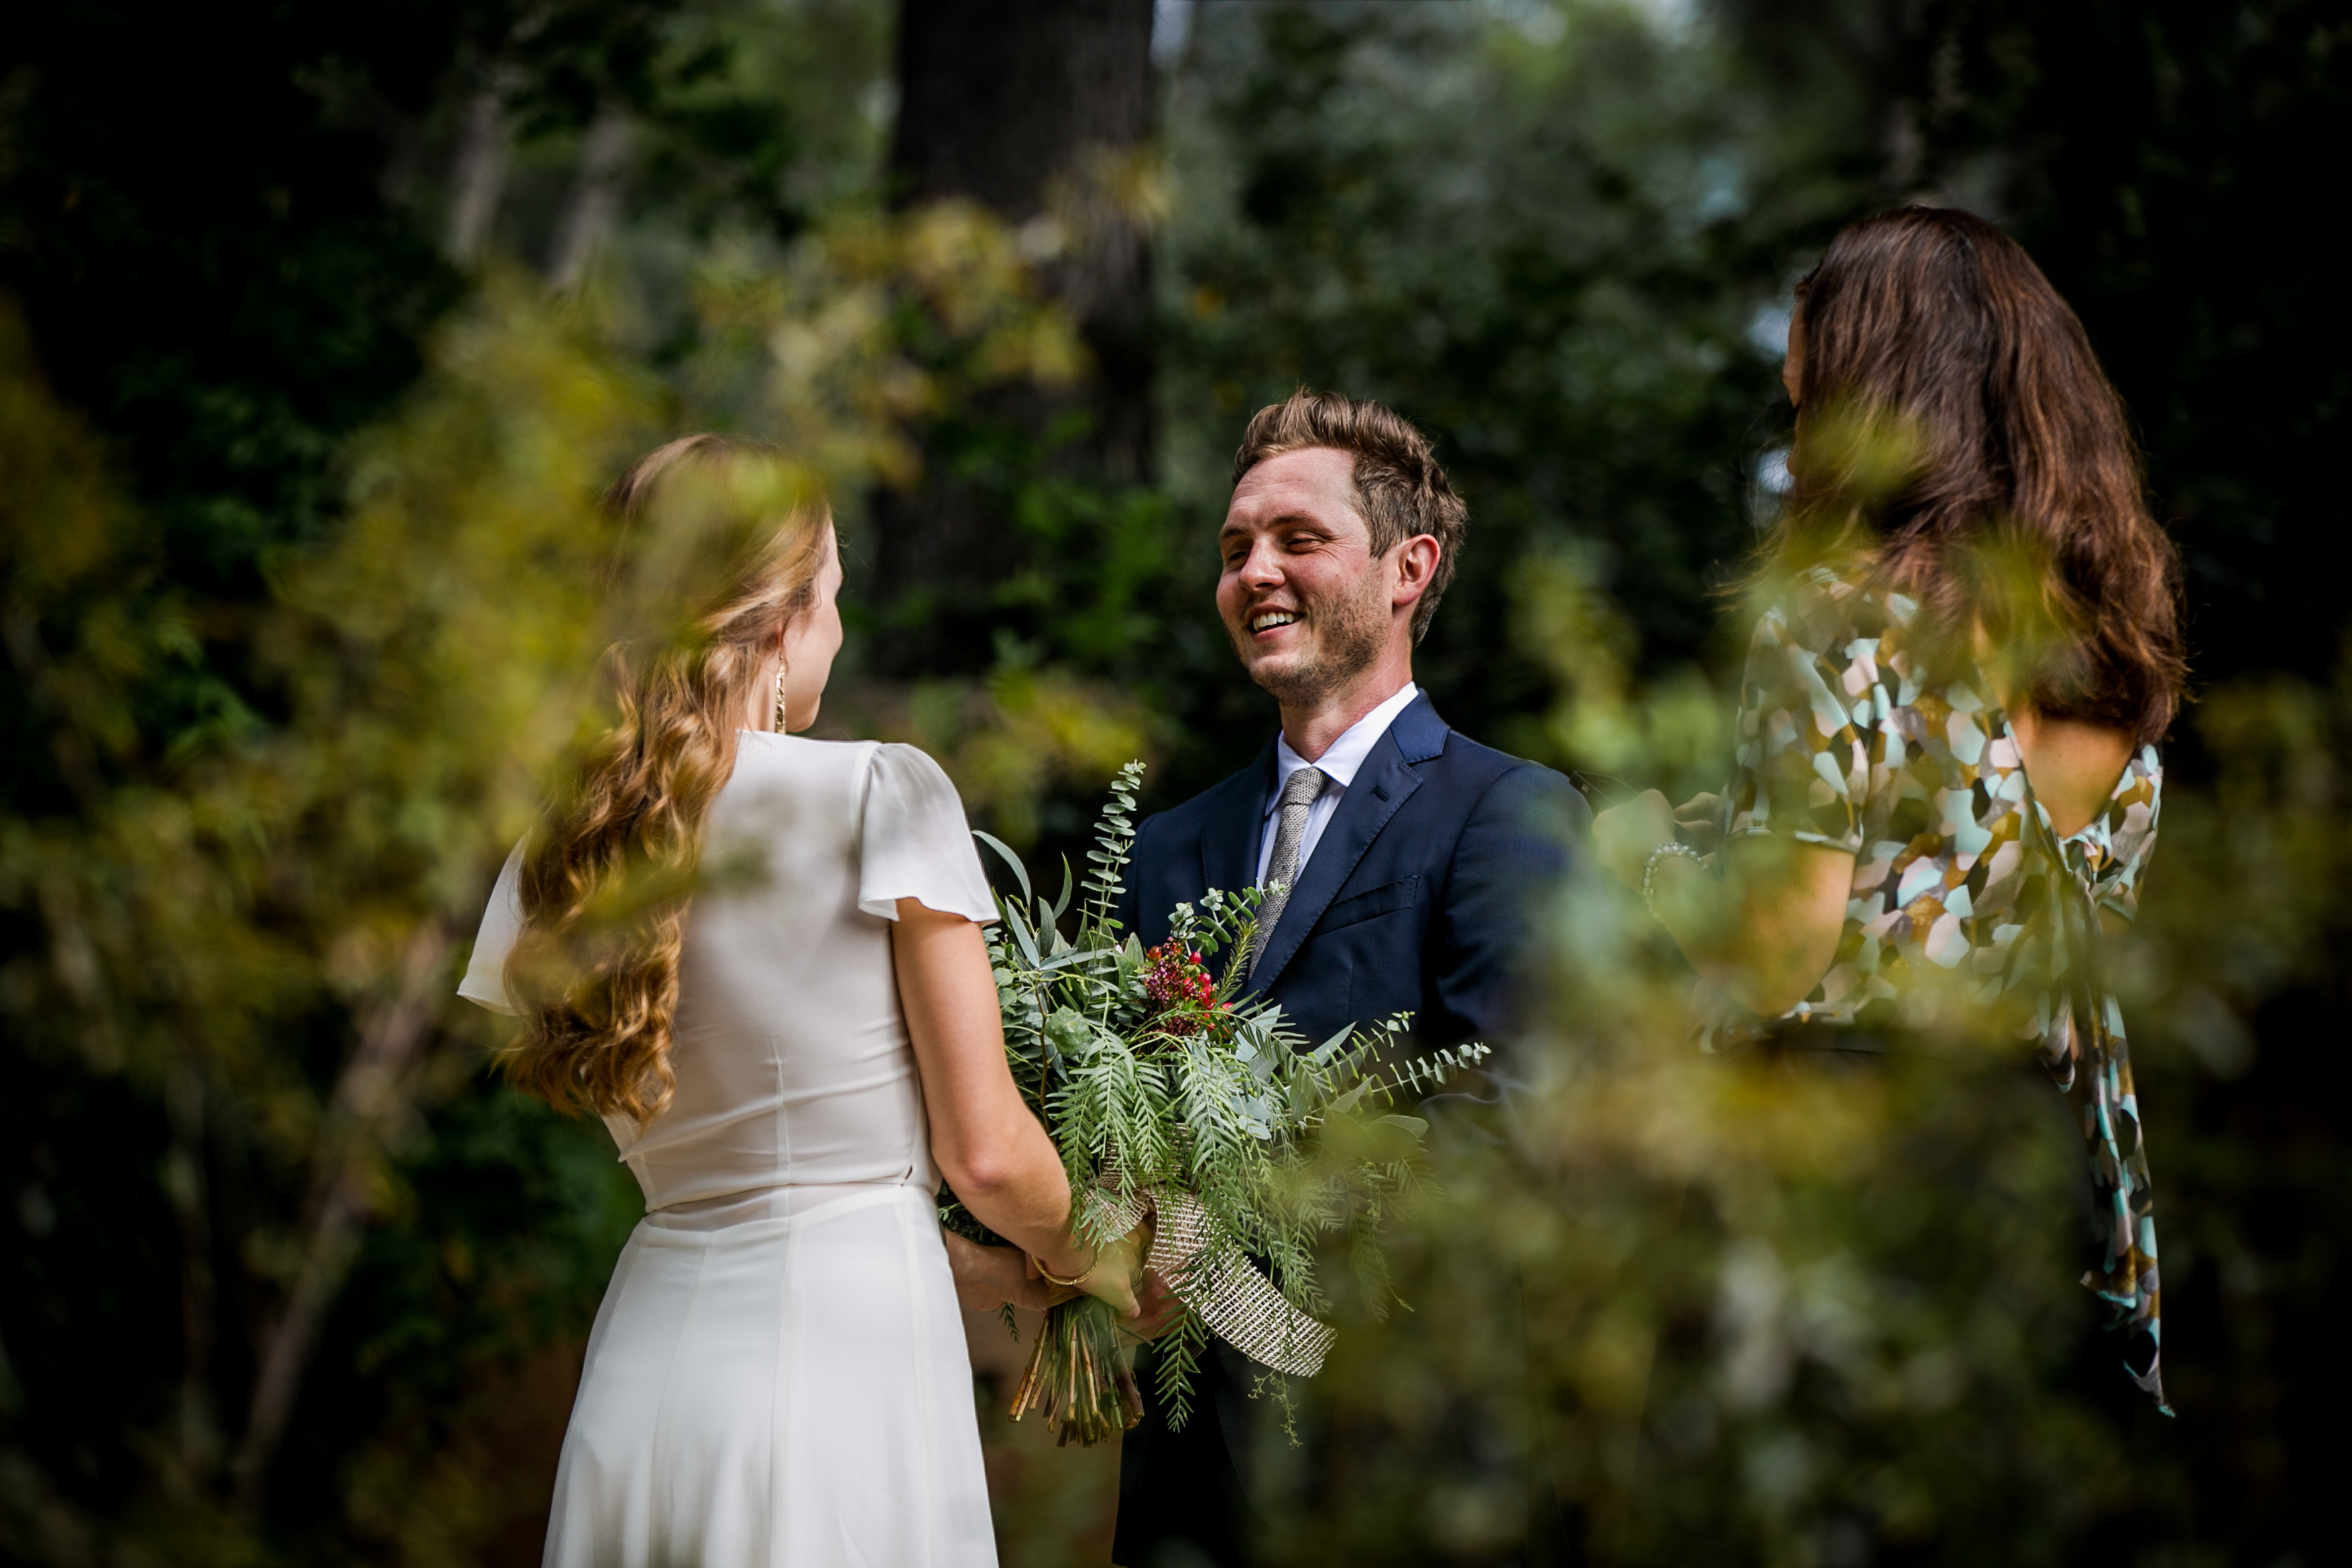 elopement in barcelona, elope in spain, elopement in spain, elopement in laberibto de horta, elopement in el Born, elopement in Park Guell, elopement in la boqueria, wedding in Barcelona, wedding couple in barcelona, elopement in the gothic quarter barcelona, wedding and elopement photographer barcelona, best elopement photos in barcelona, bride and groom in barcelona, spanish elopement, best wedding photos barcelona, best wedding photographer spain, destination wedding in spain, fotografo de boda barcelona, sesion de pareja en barcelona, engagement photos in barcelona, post wedding in barcelona